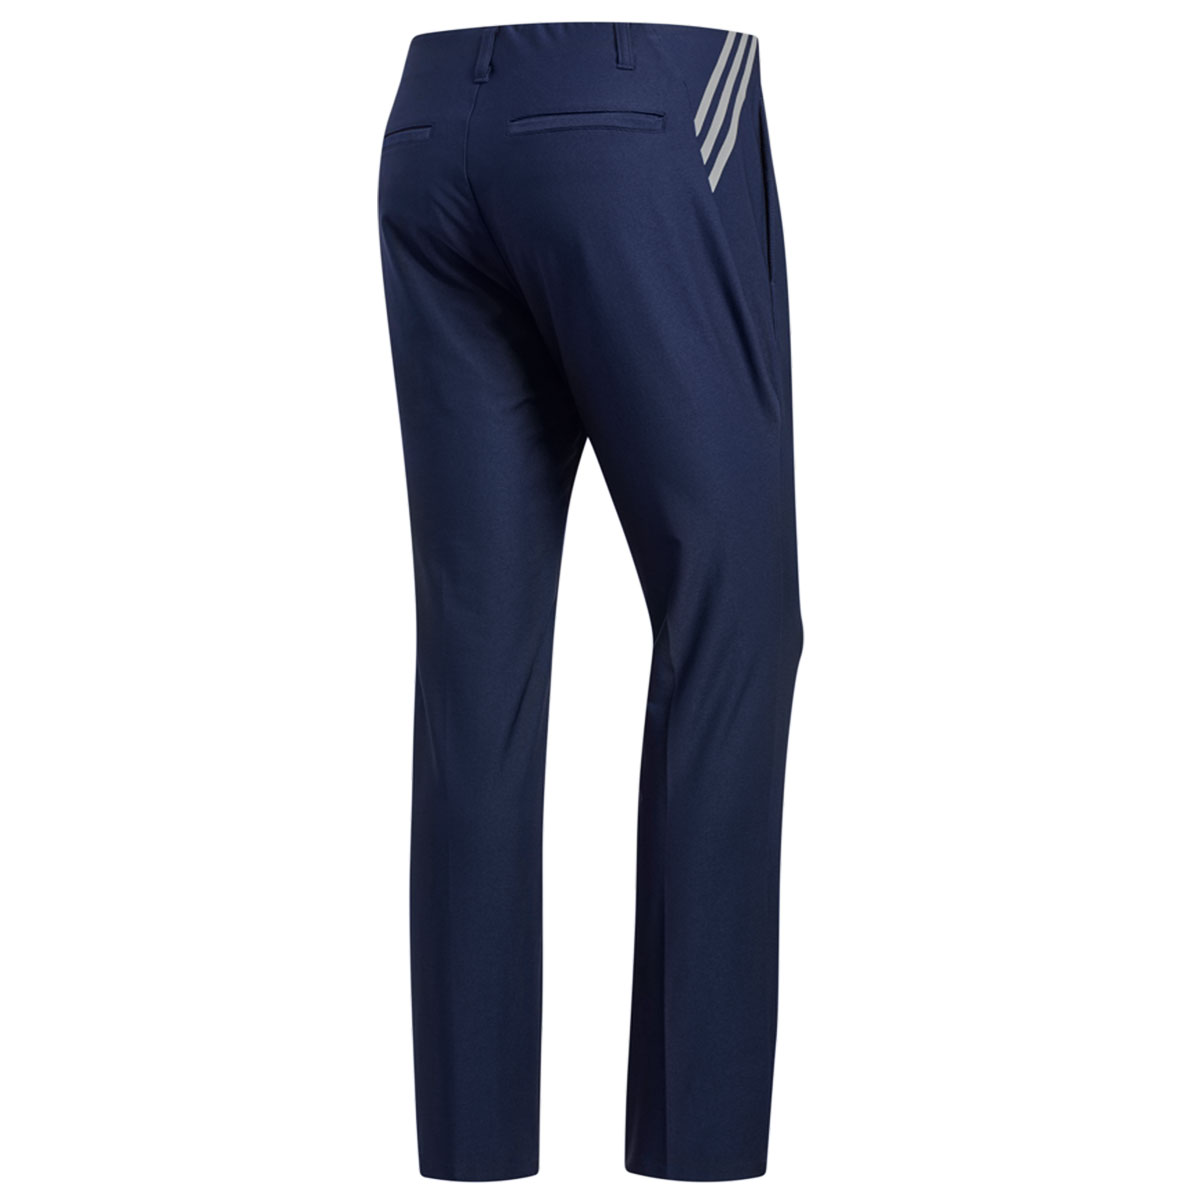 adidas-Golf-Mens-2019-Ultimate365-3-Stripes-Tapered-Water-Resistant-Trousers thumbnail 9